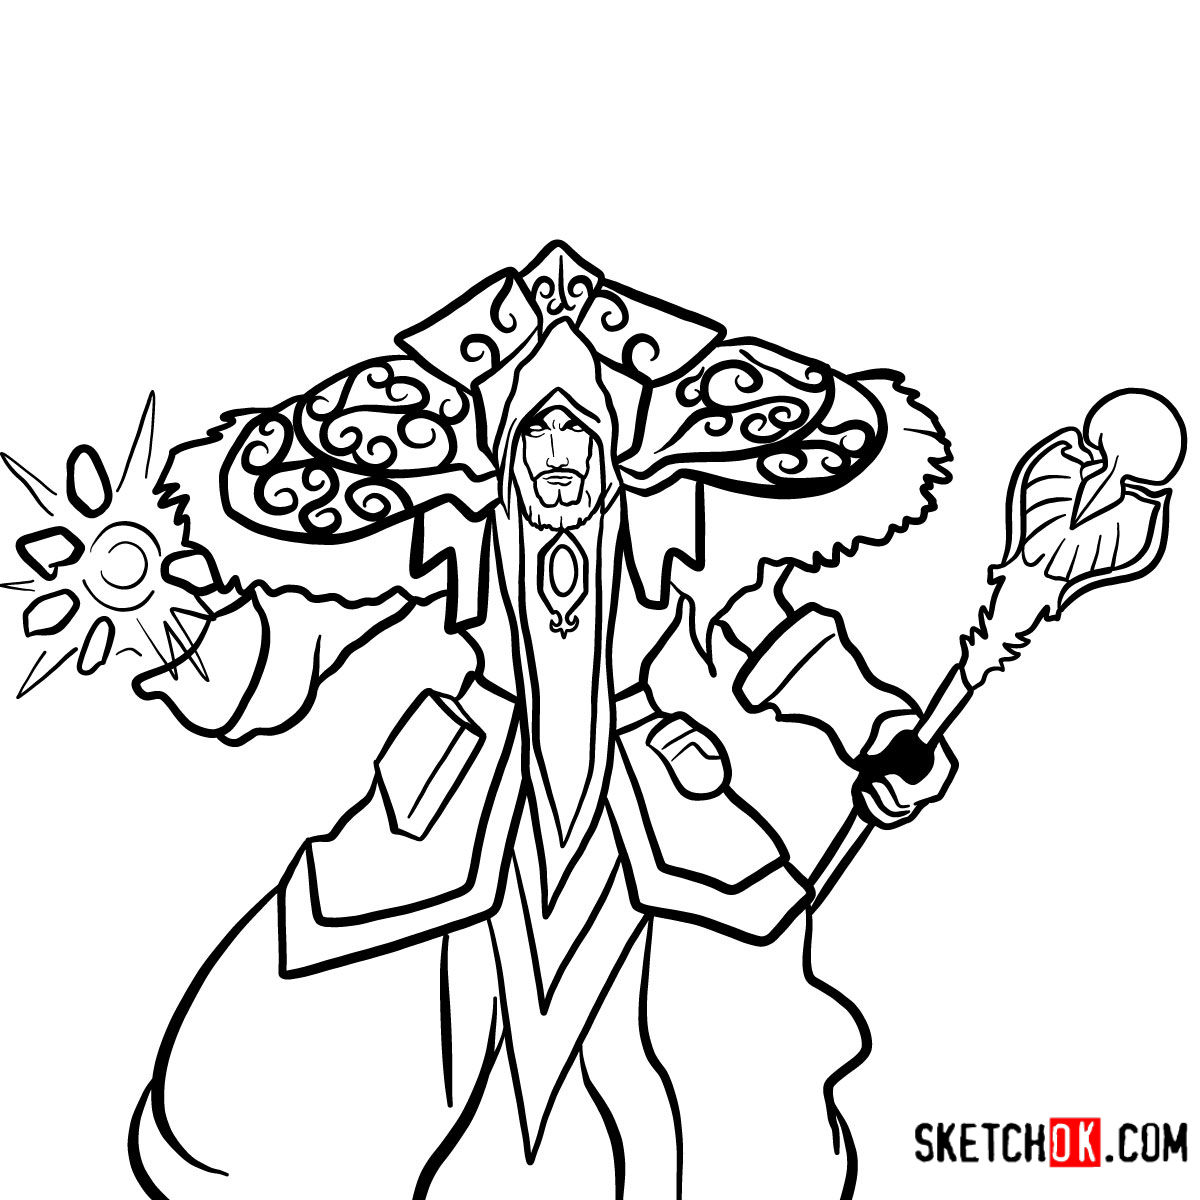 How to draw Magus Medivh | World of Warcraft